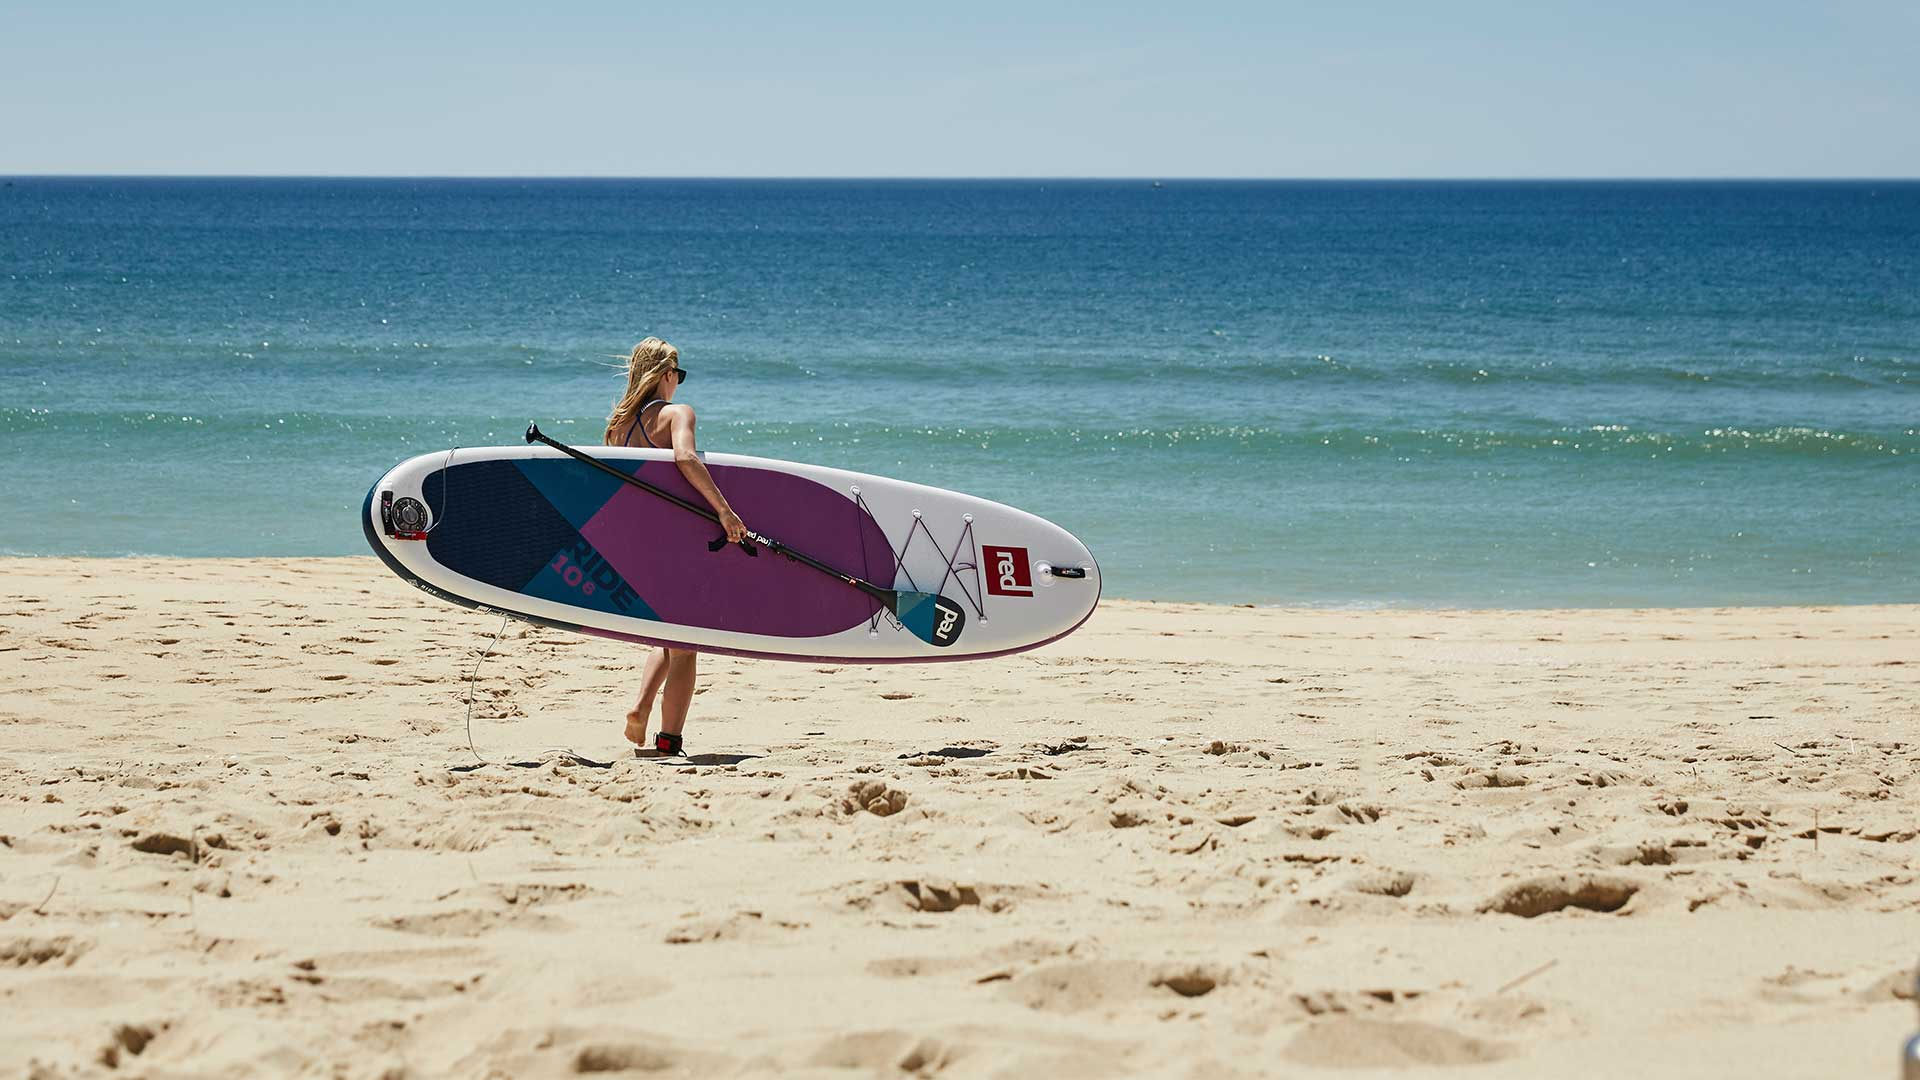 redpaddleco-106-ride-se-msl-inflatable-paddle-board-desktop-gallery-2